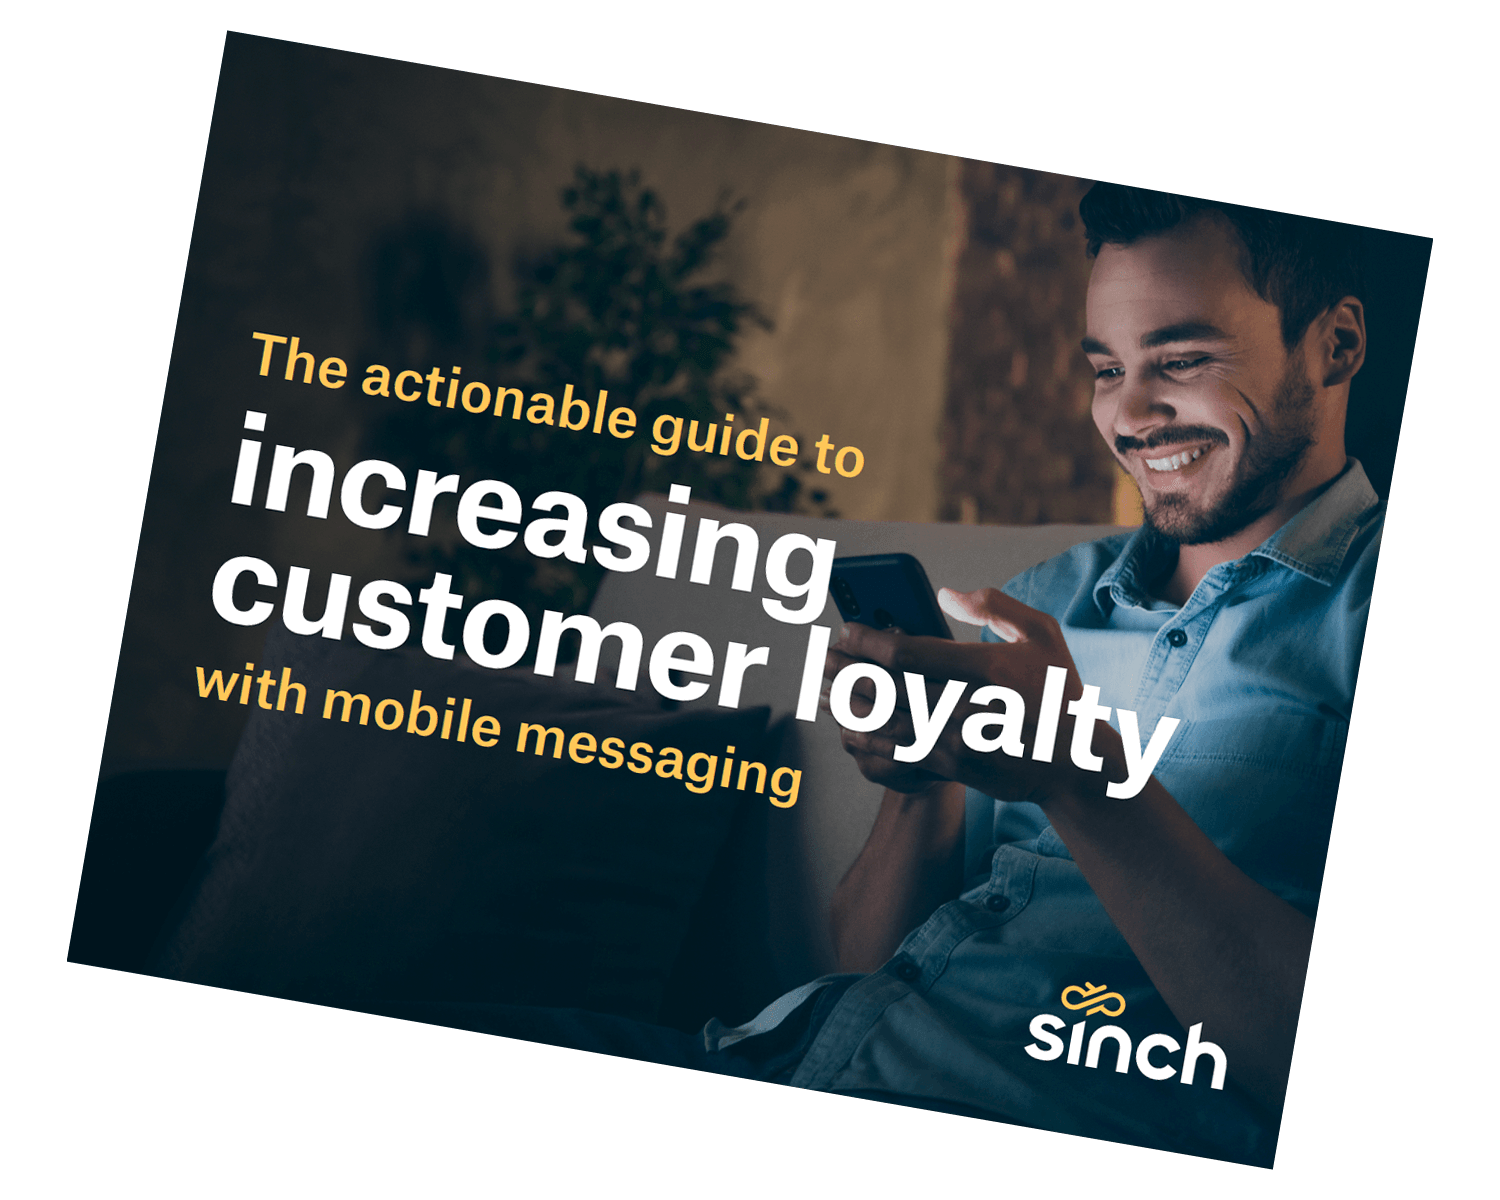 Image of the loyalty guide